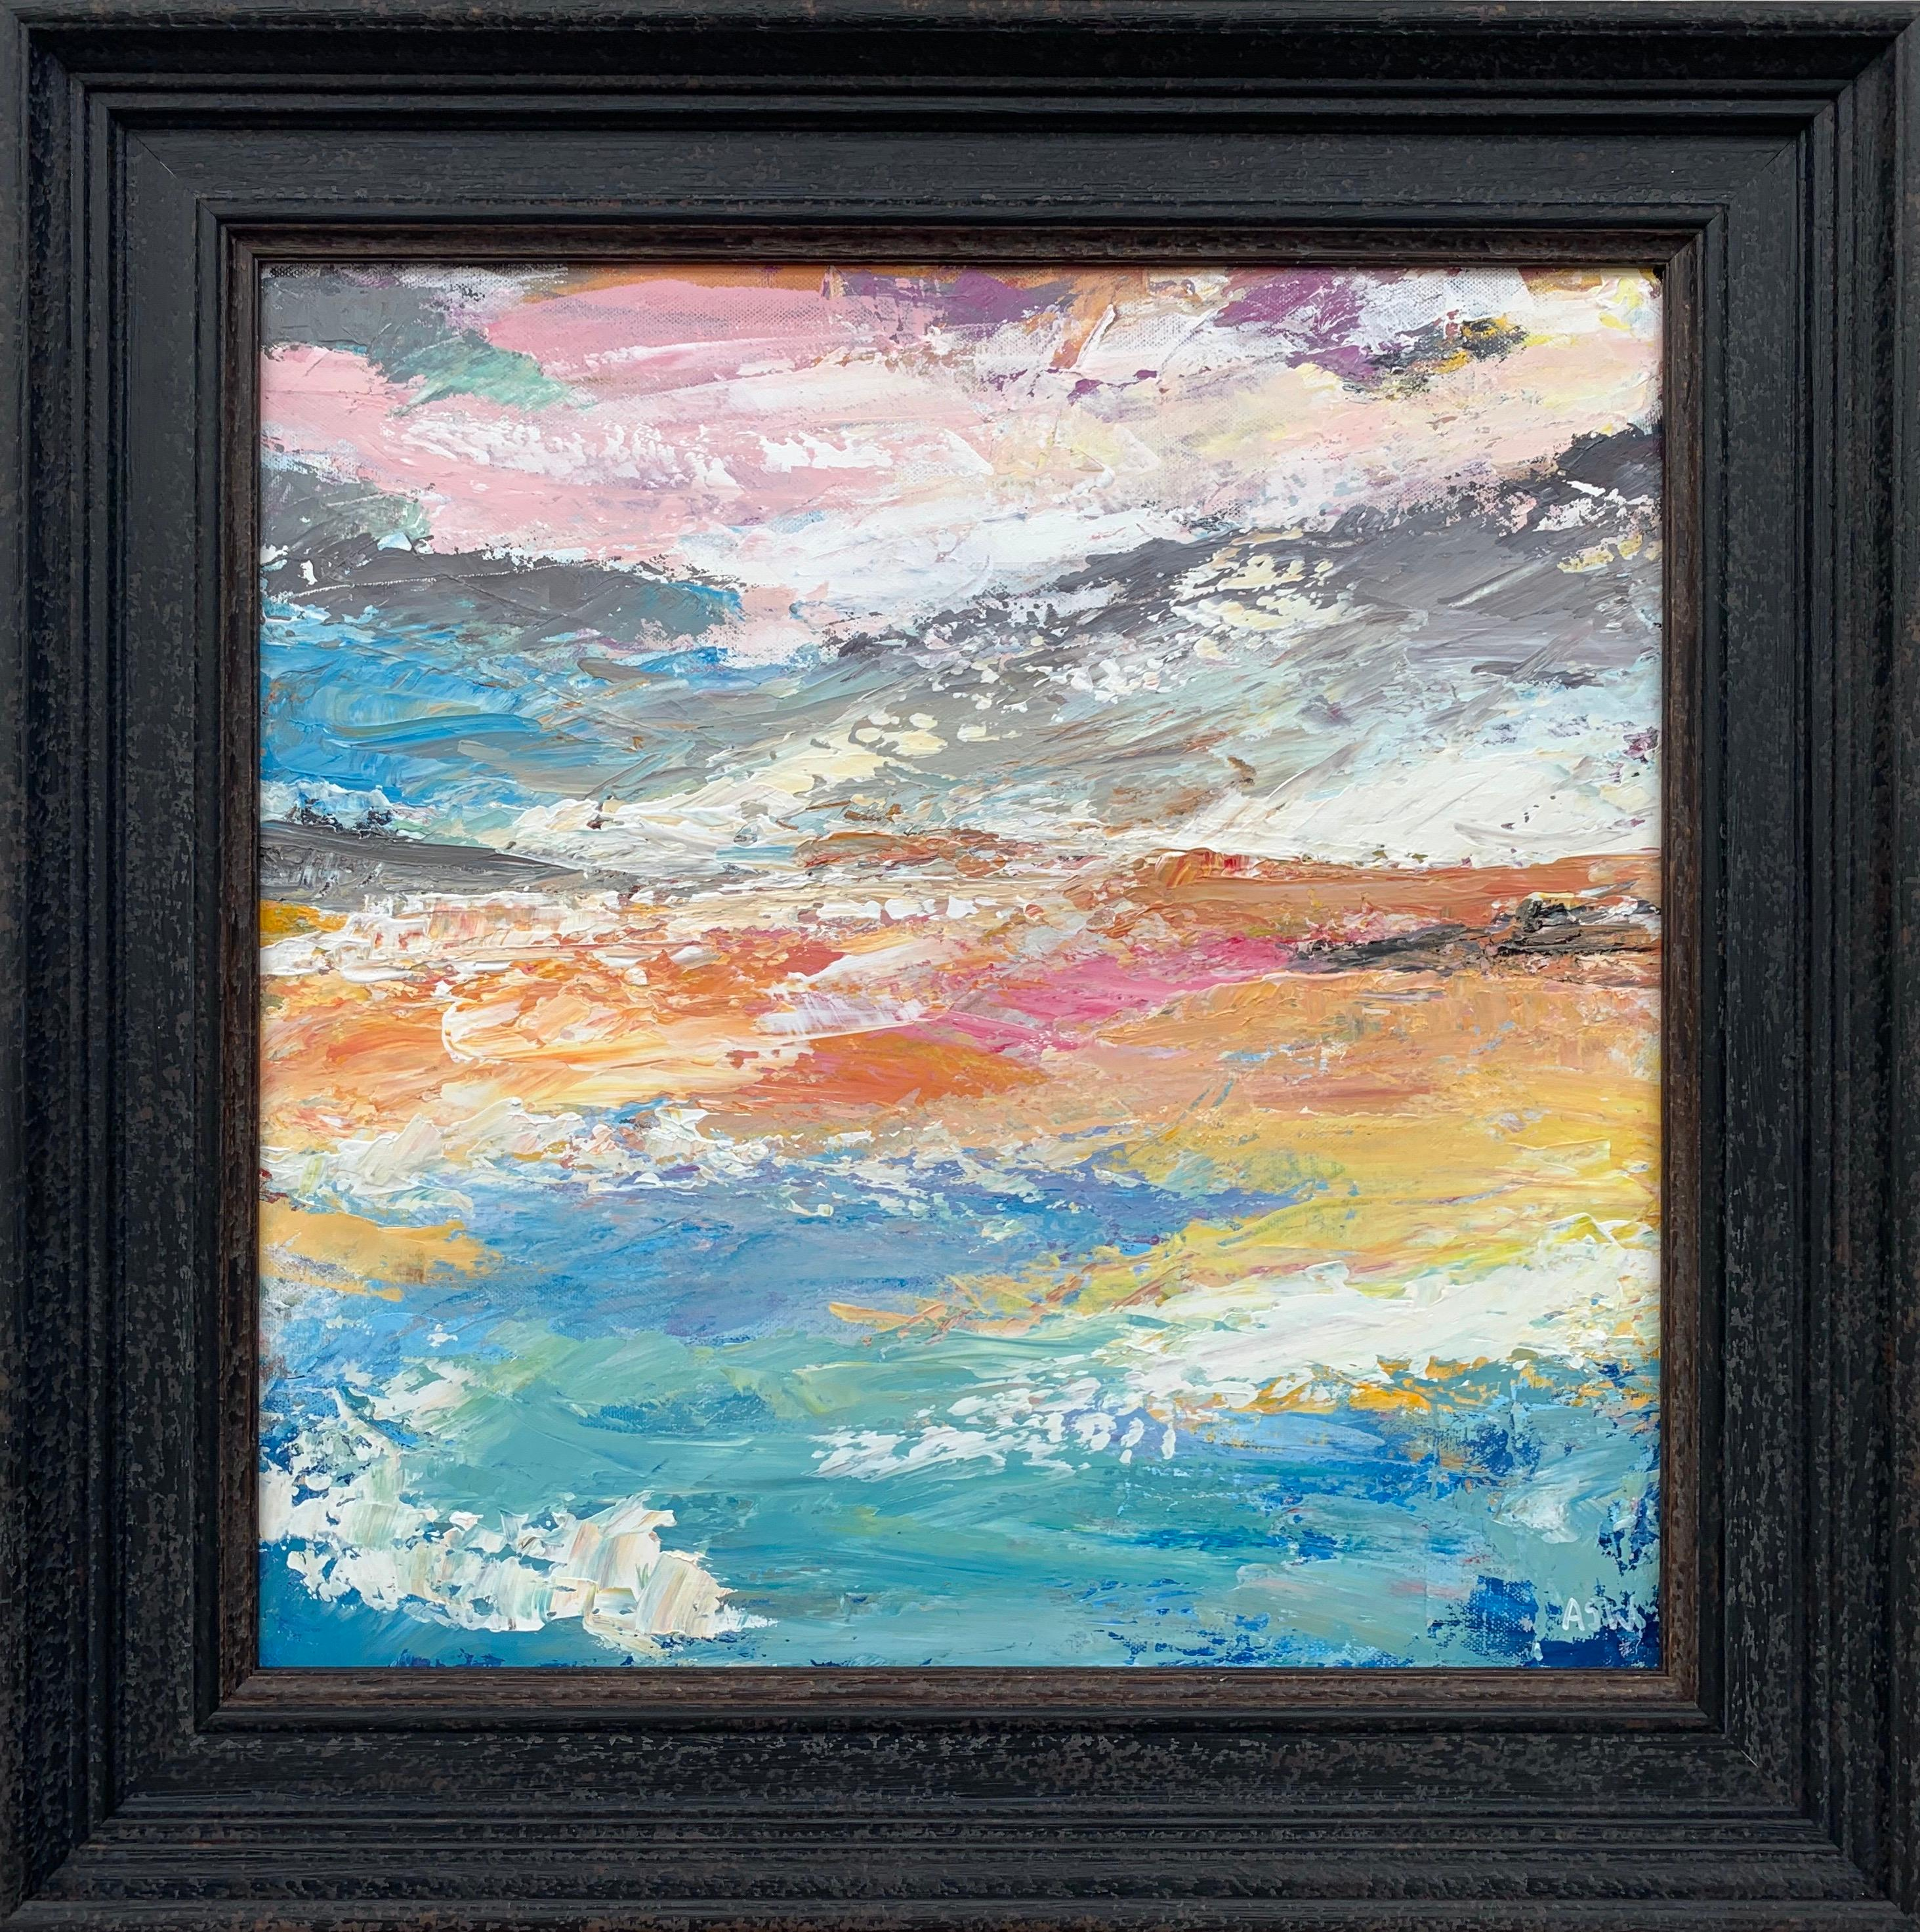 Abstract Beach Seascape Landscape Light Colours by Contemporary British Artist